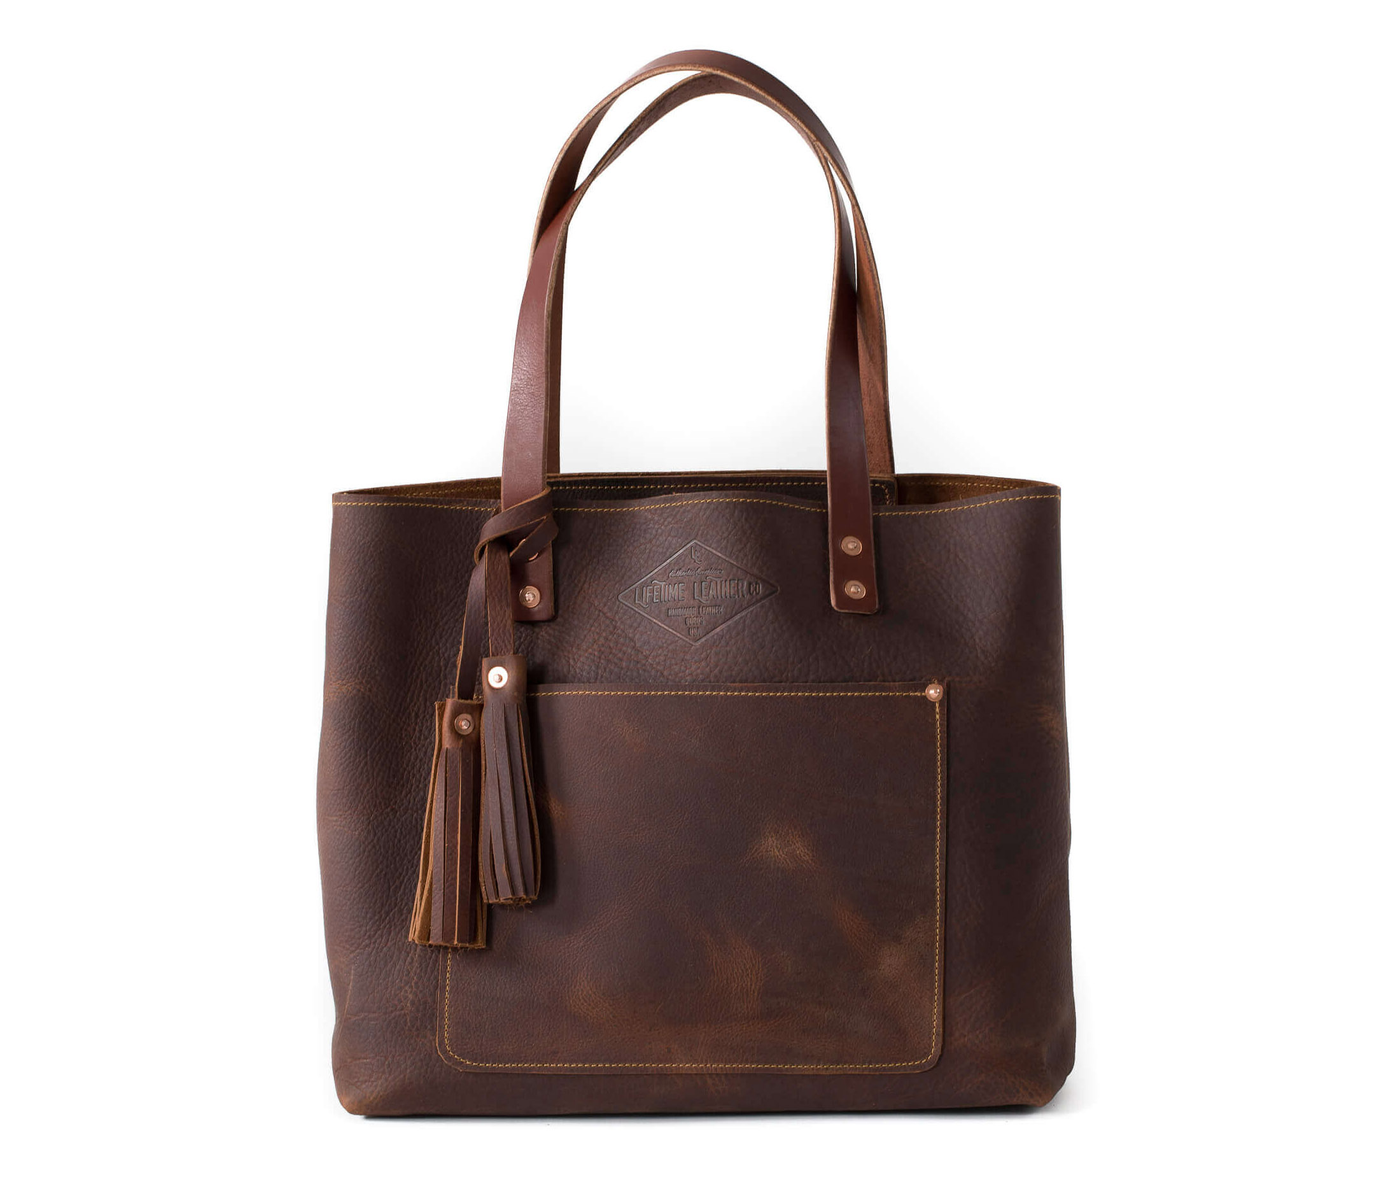 Authentic Handmade Leather Tote